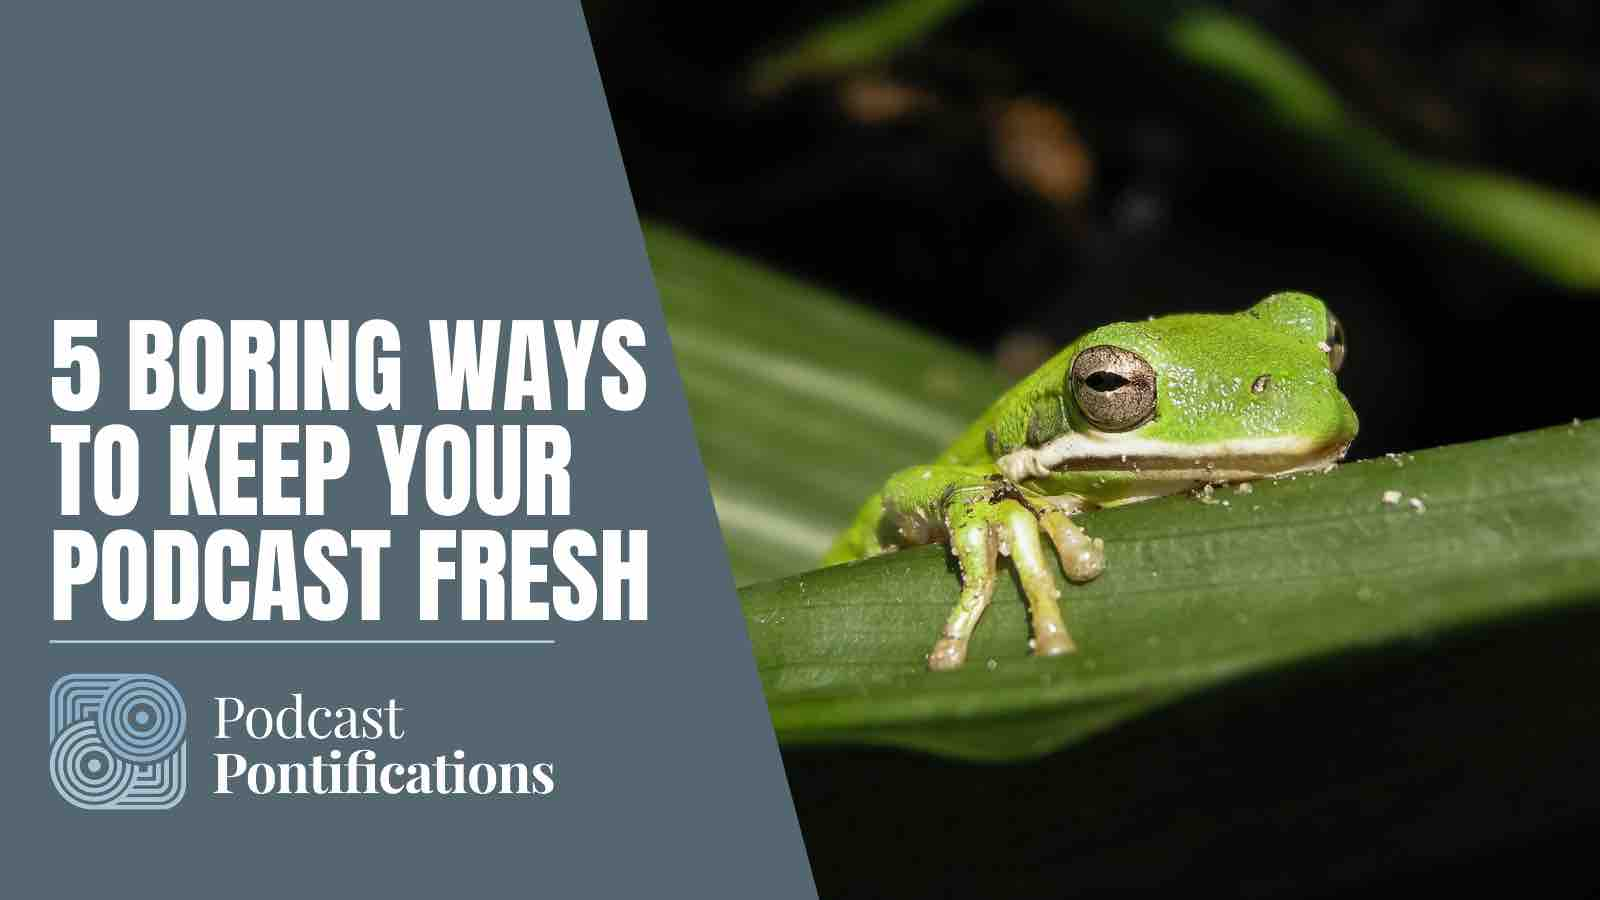 5 Boring Ways To Keep Your Podcast Fresh